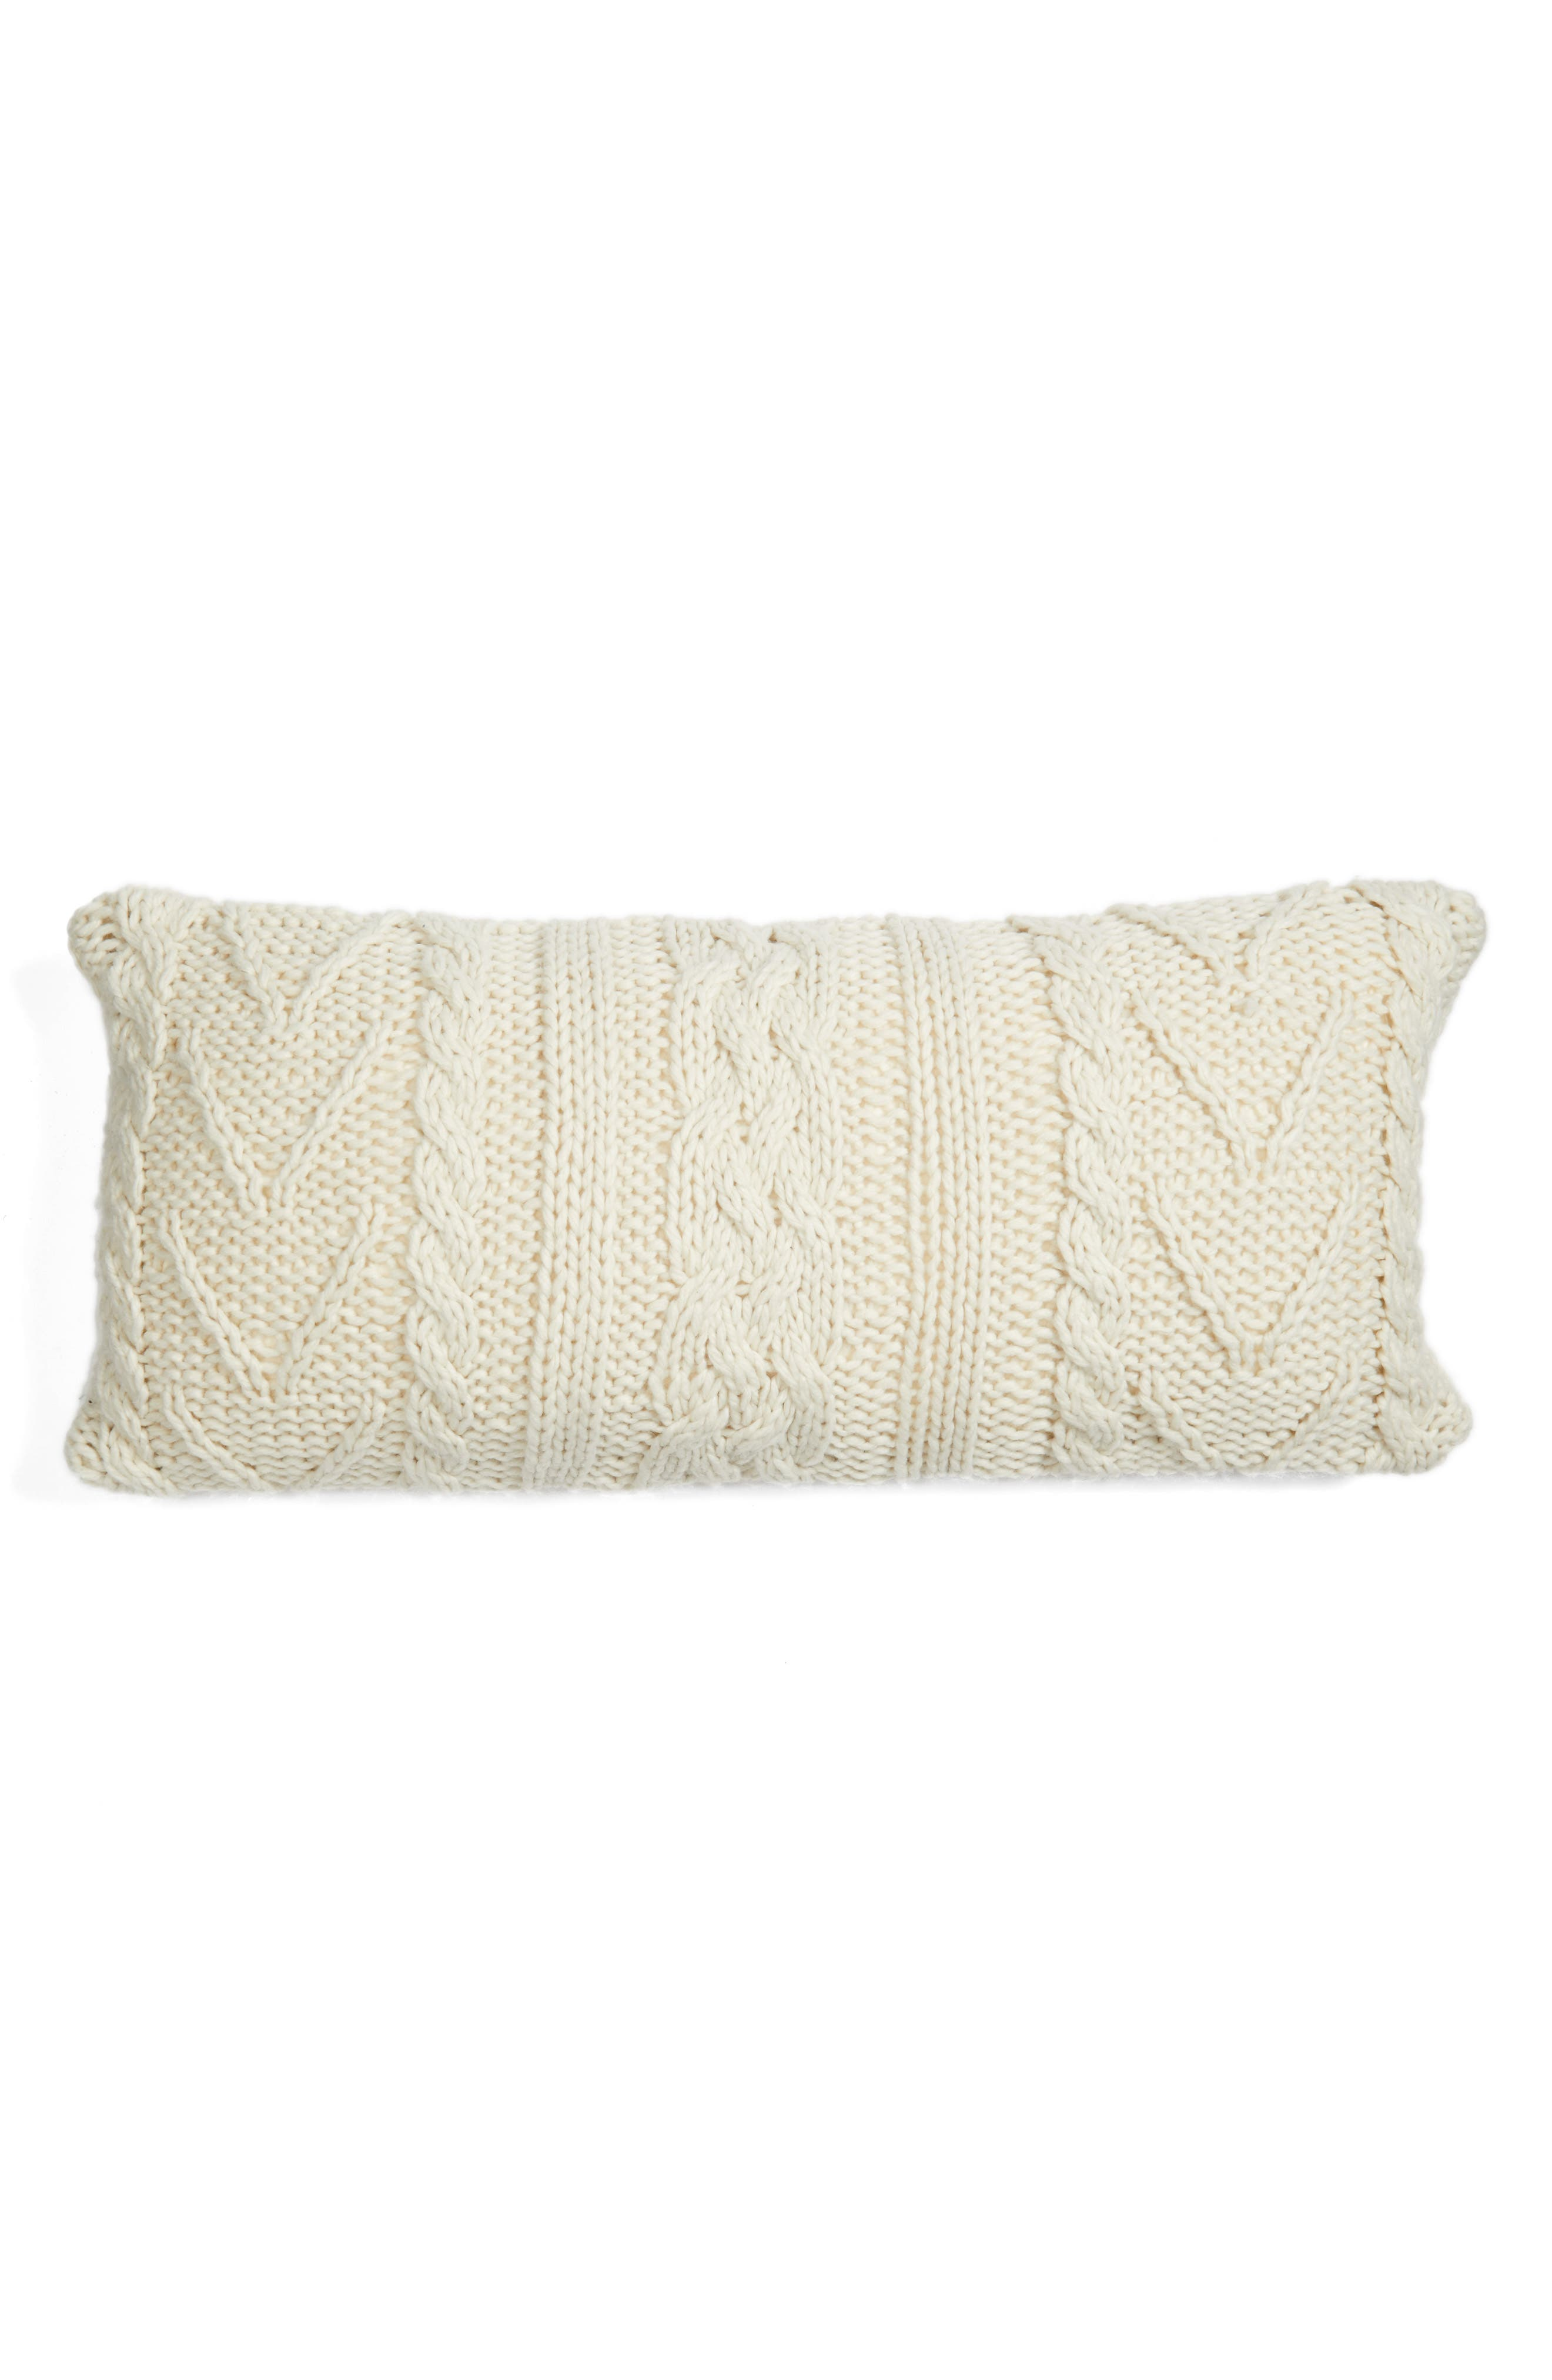 Cable Knit Accent Pillow,                             Alternate thumbnail 4, color,                             Ivory Dove